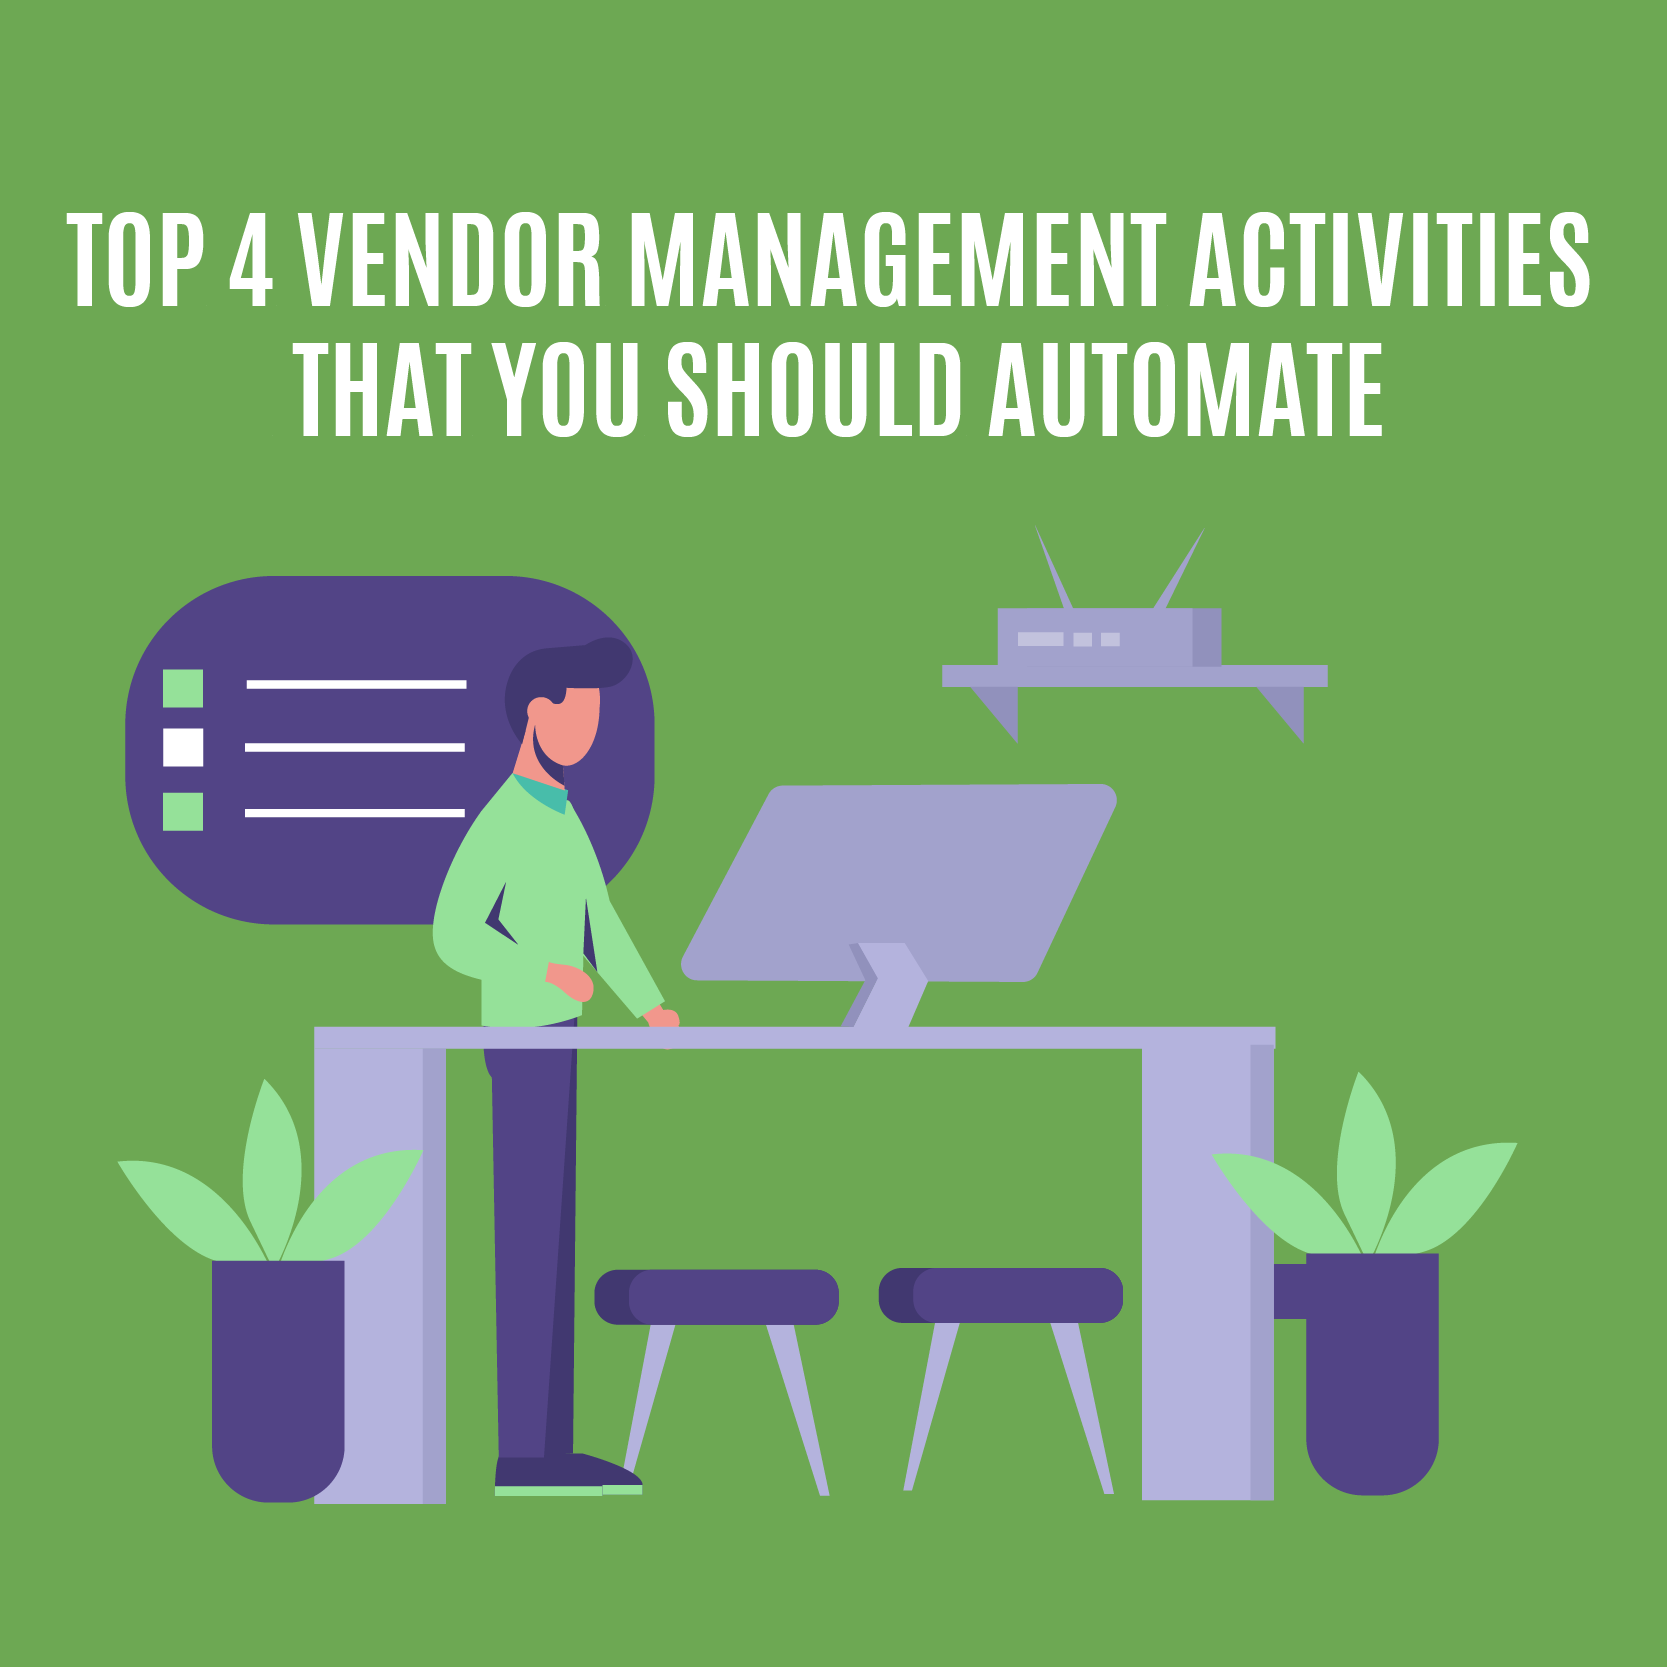 Activities that You Should Automate